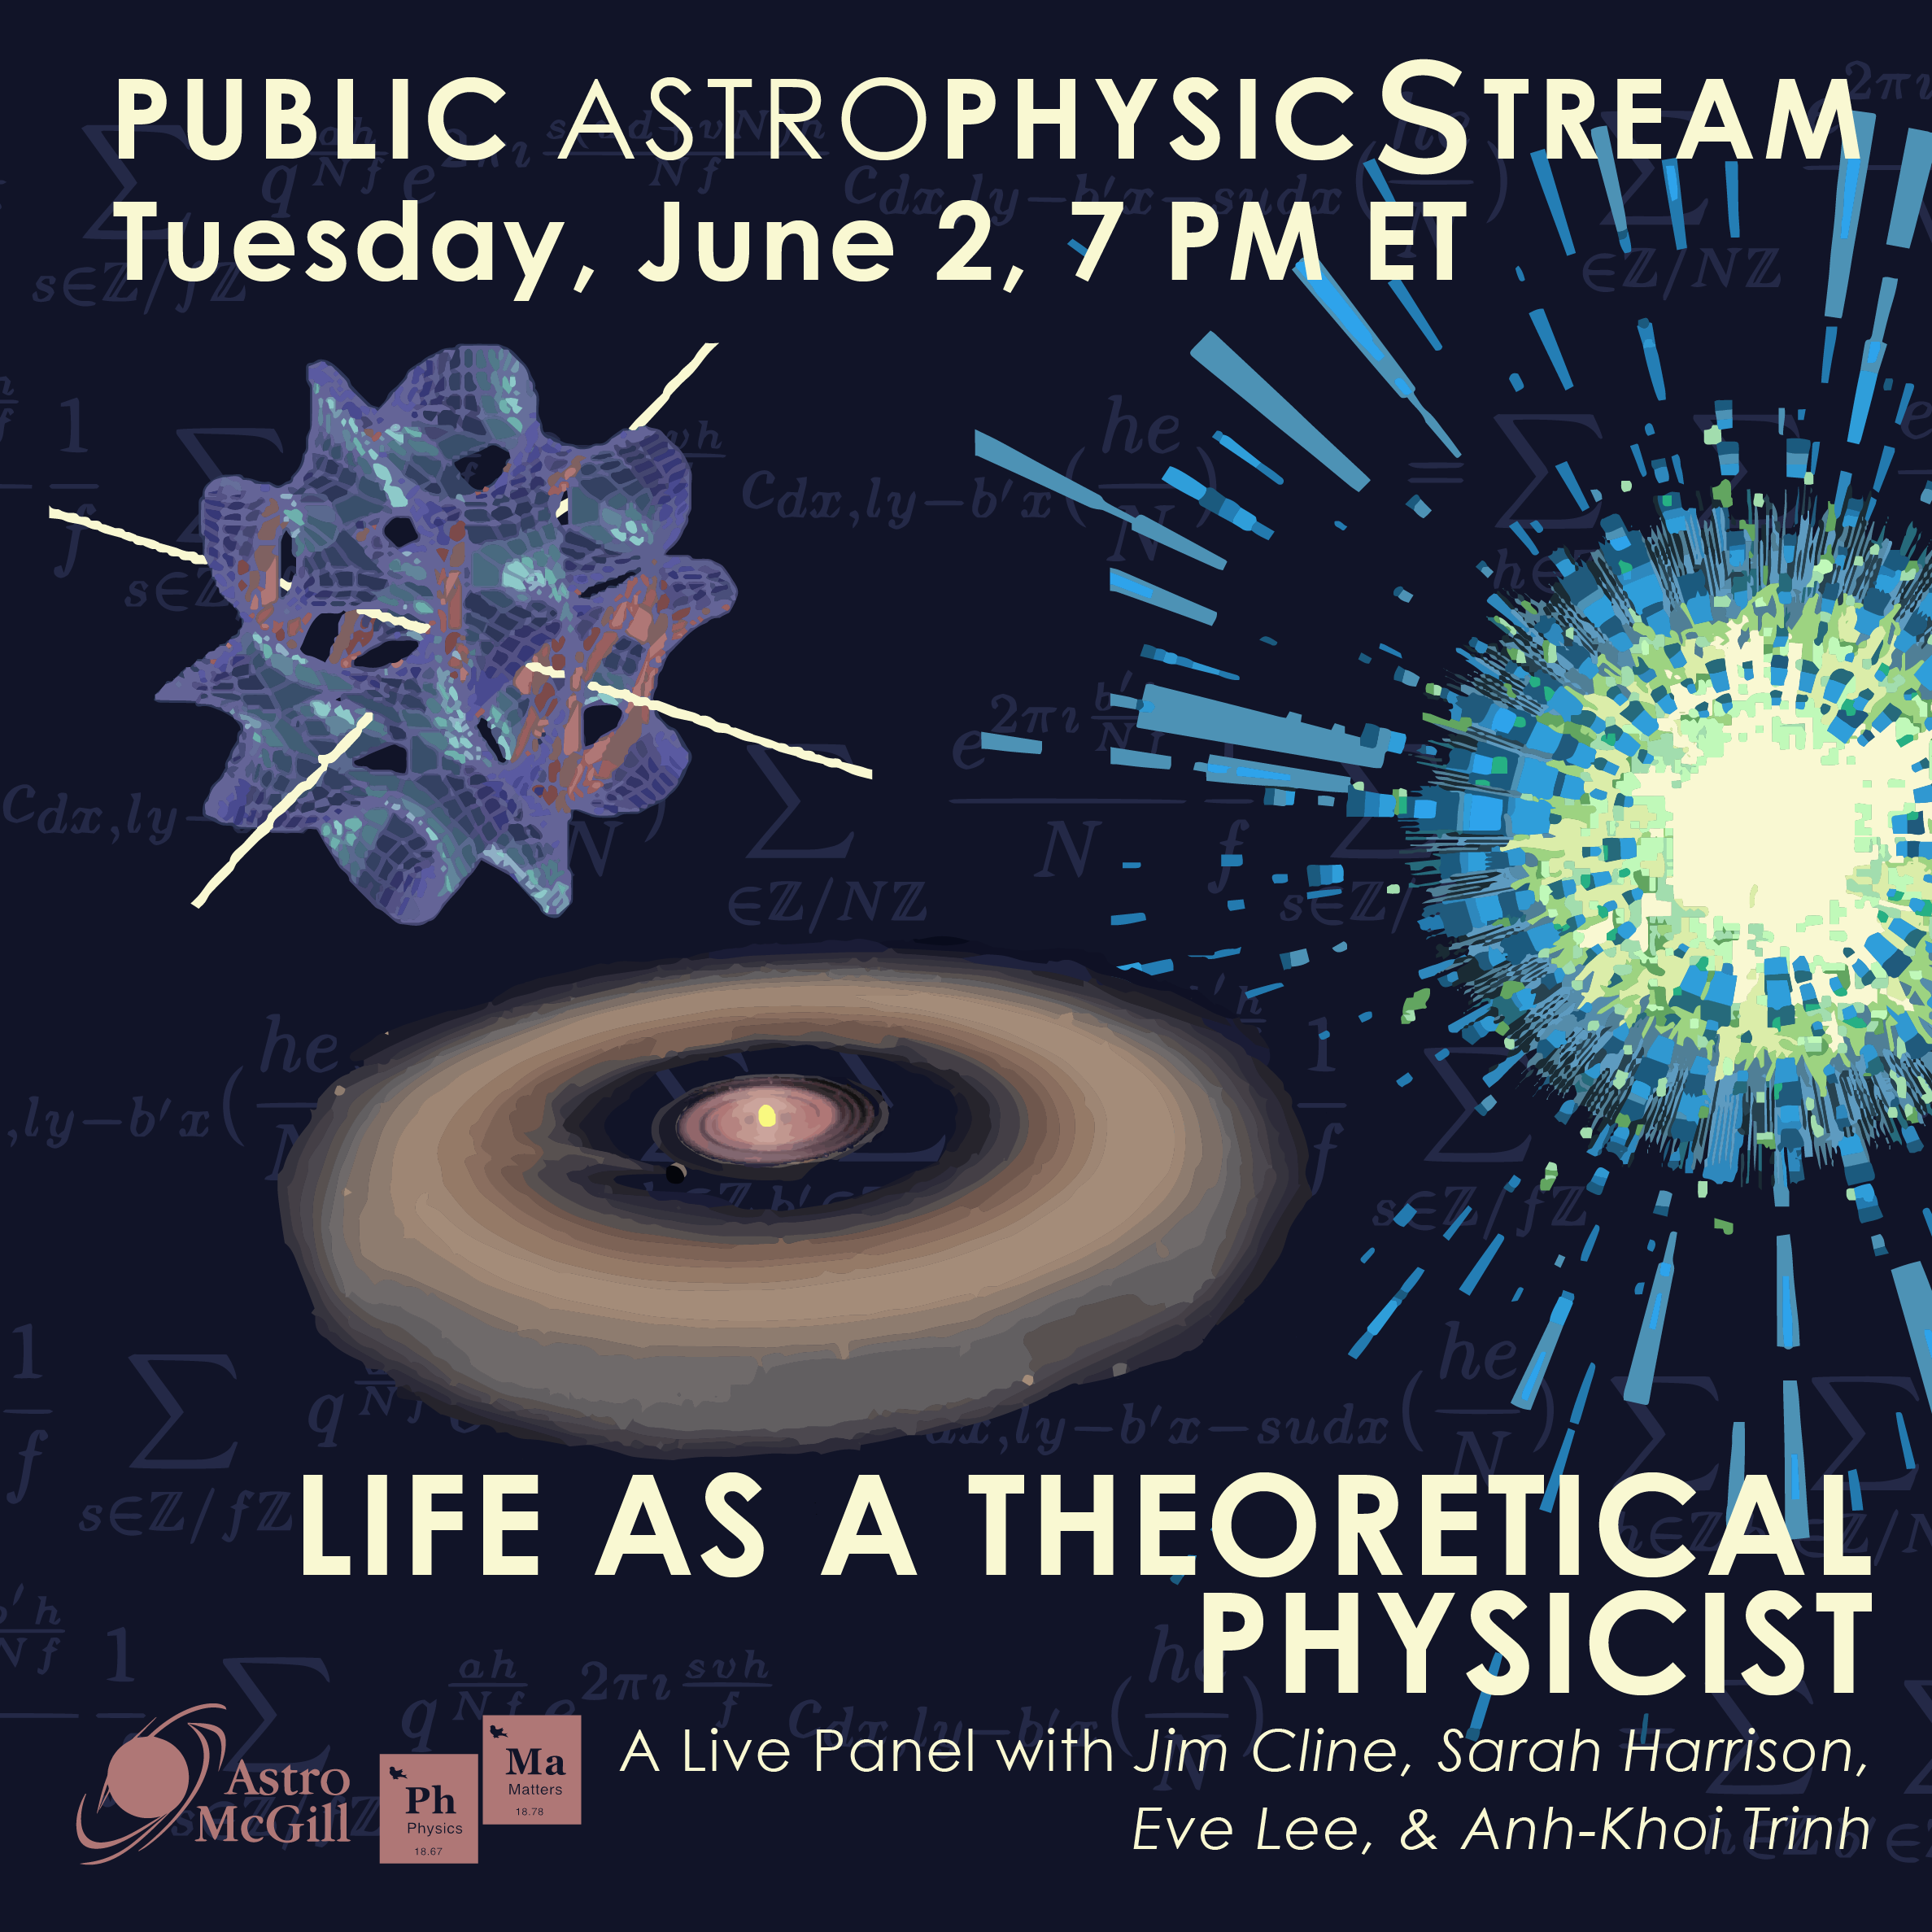 Life as a Theoretical Physicist Live Panel